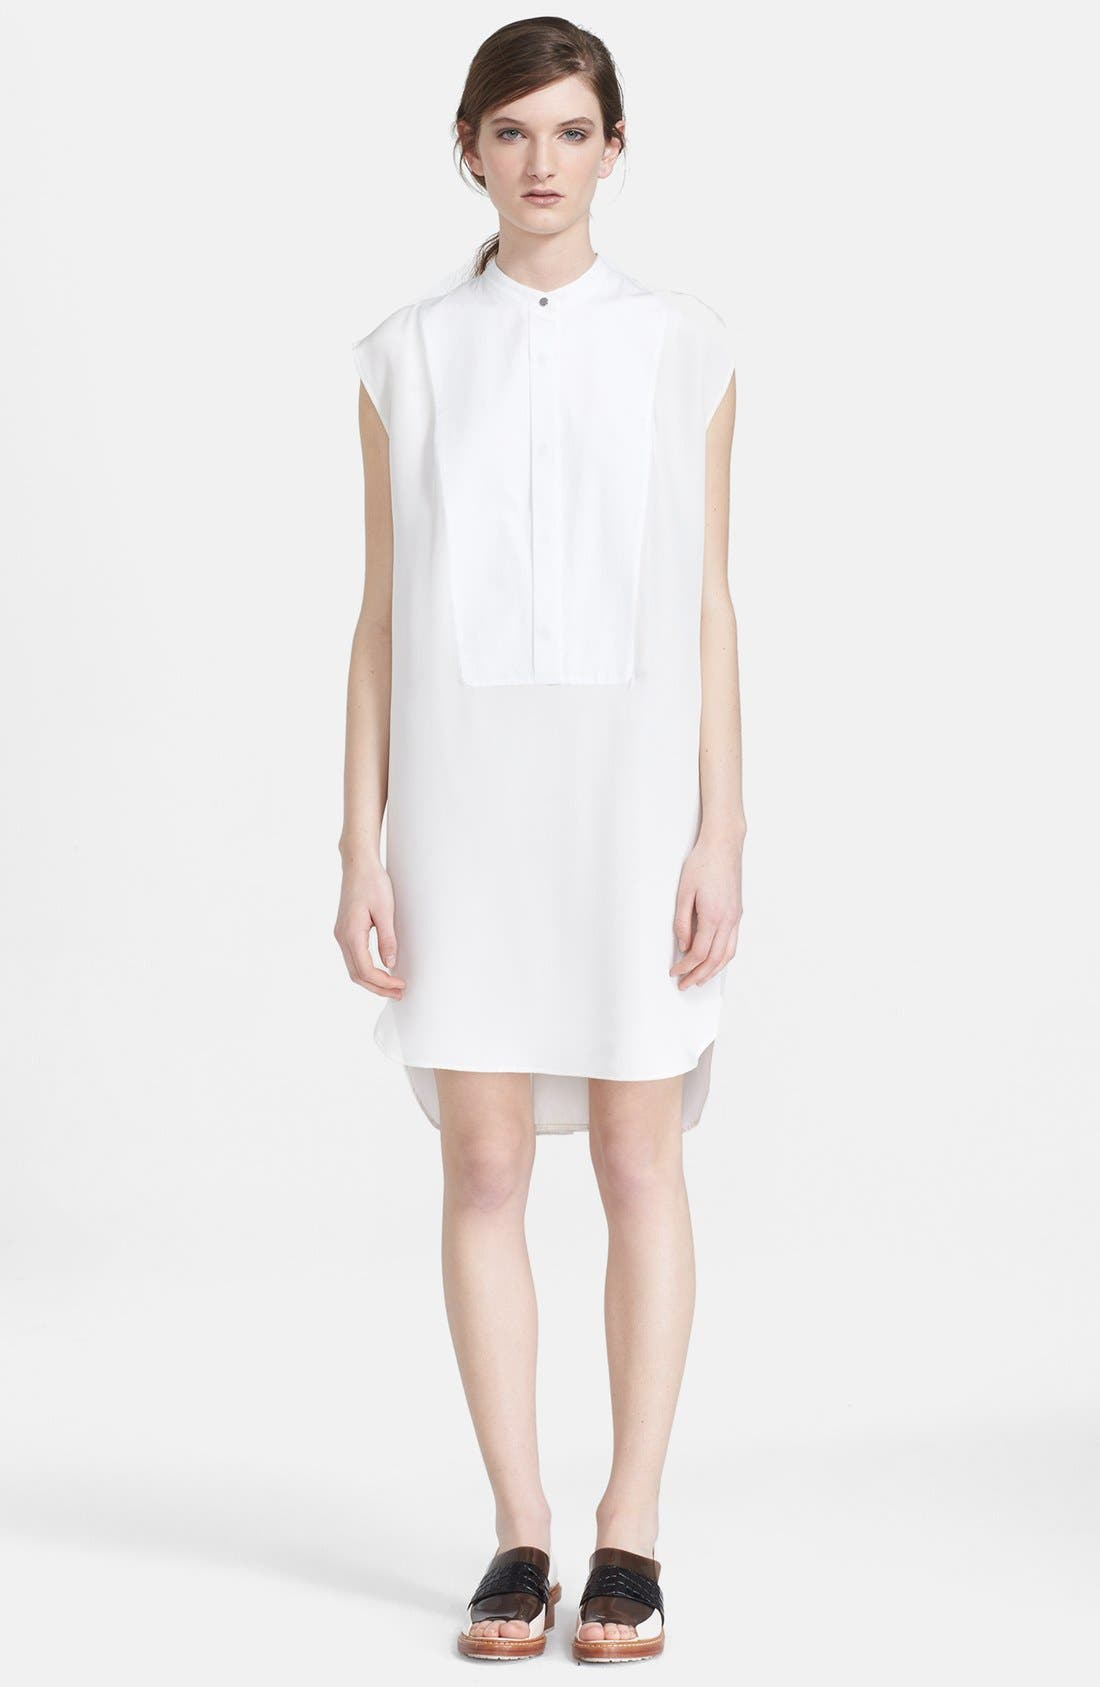 Main Image - 3.1 Phillip Lim Collarless Cotton Shirtdress